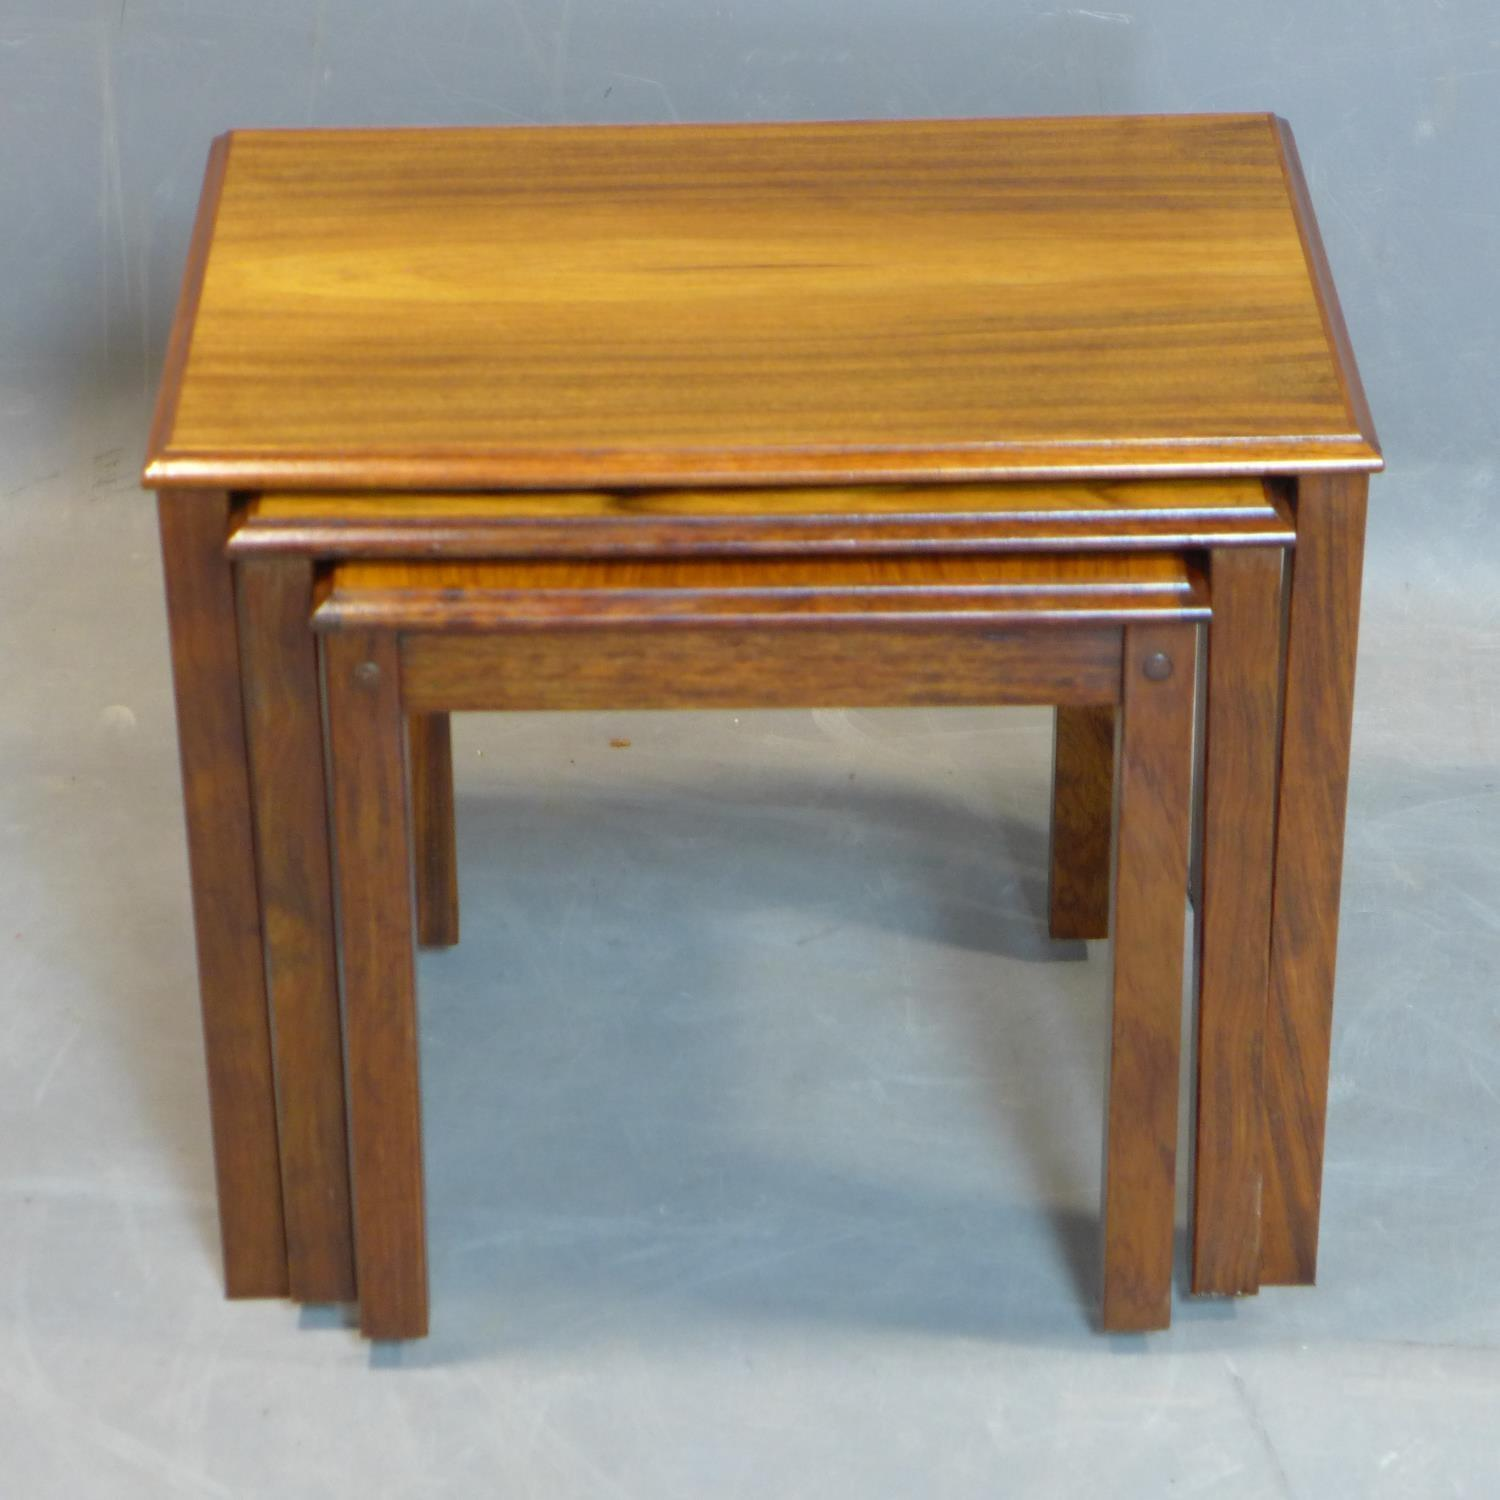 Lot 122 - A nest of three Danish exotic hardwood tables, marked 'Made in Denmark' to bases, H.46 W.54 D.39cm